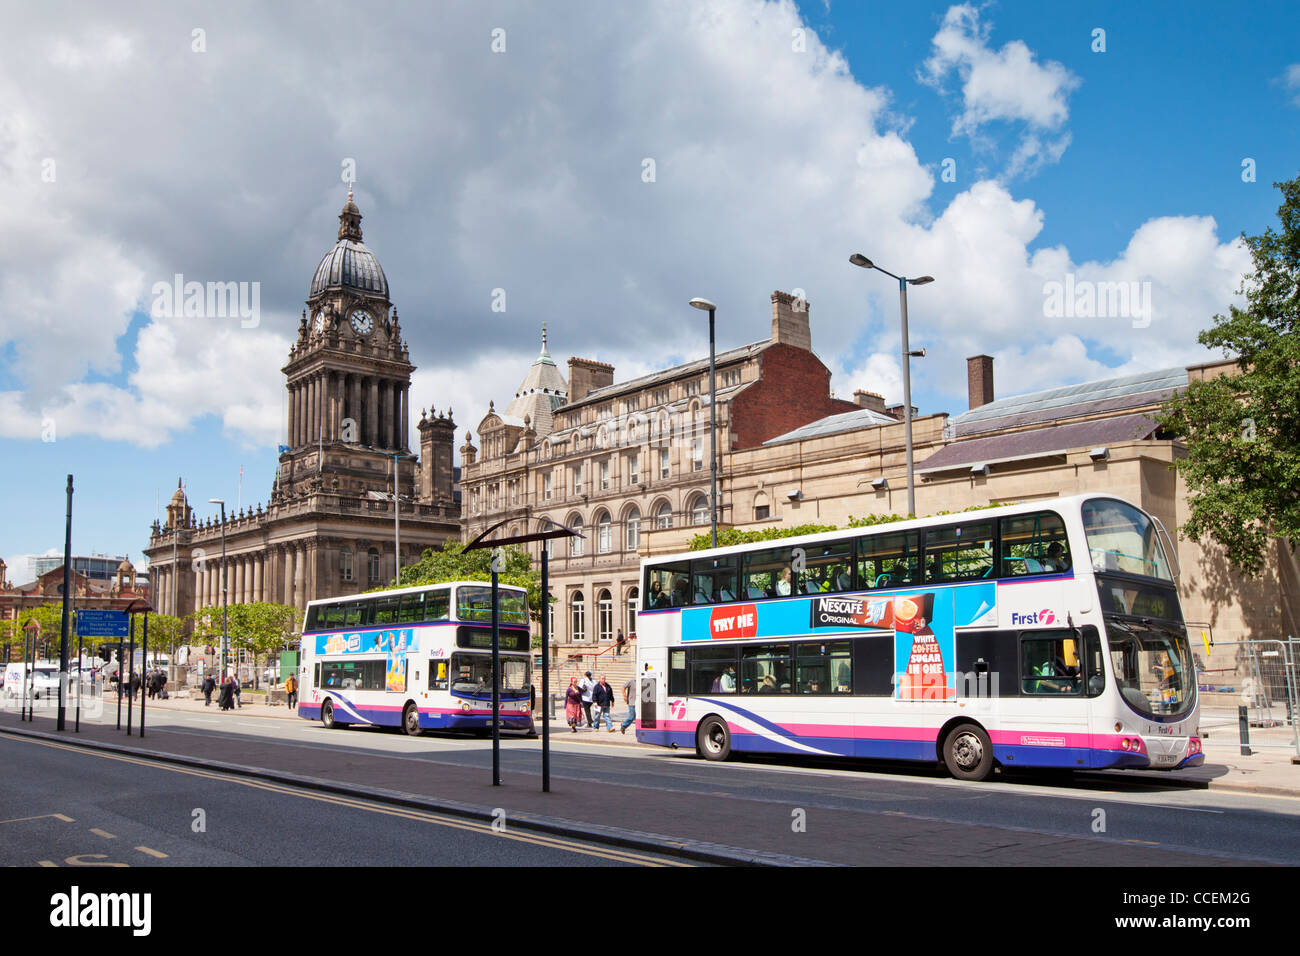 Two double decker buses in front of Leeds Town Hall, West Yorkshire, England - Stock Image